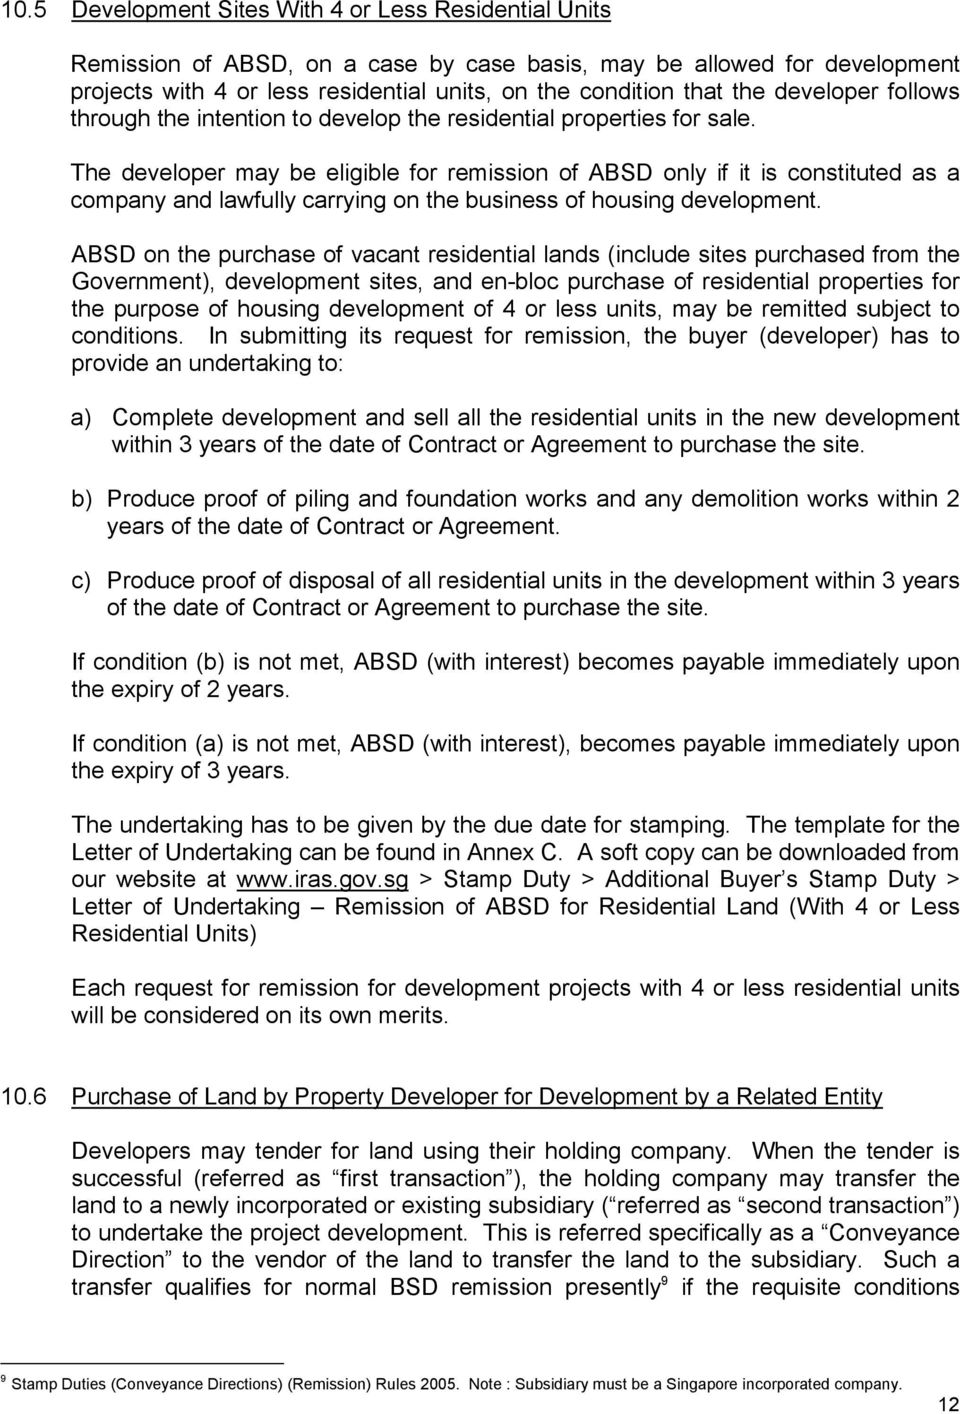 The developer may be eligible for remission of ABSD only if it is constituted as a company and lawfully carrying on the business of housing development.